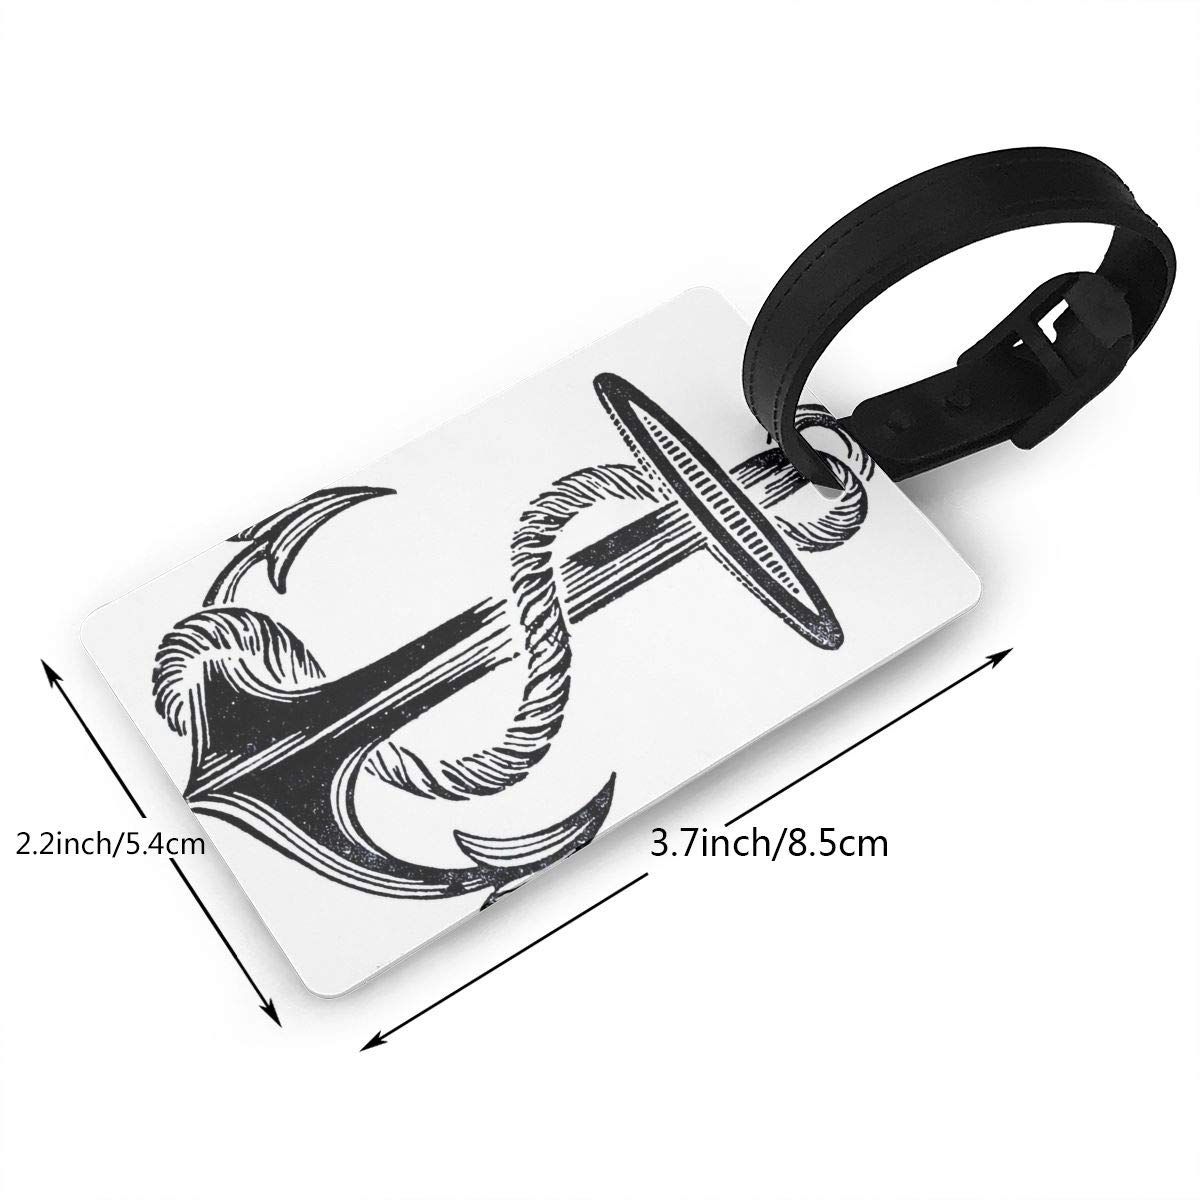 Anchors Handbag Tag For Travel Bag Suitcase Accessories 2 Pack Luggage Tags